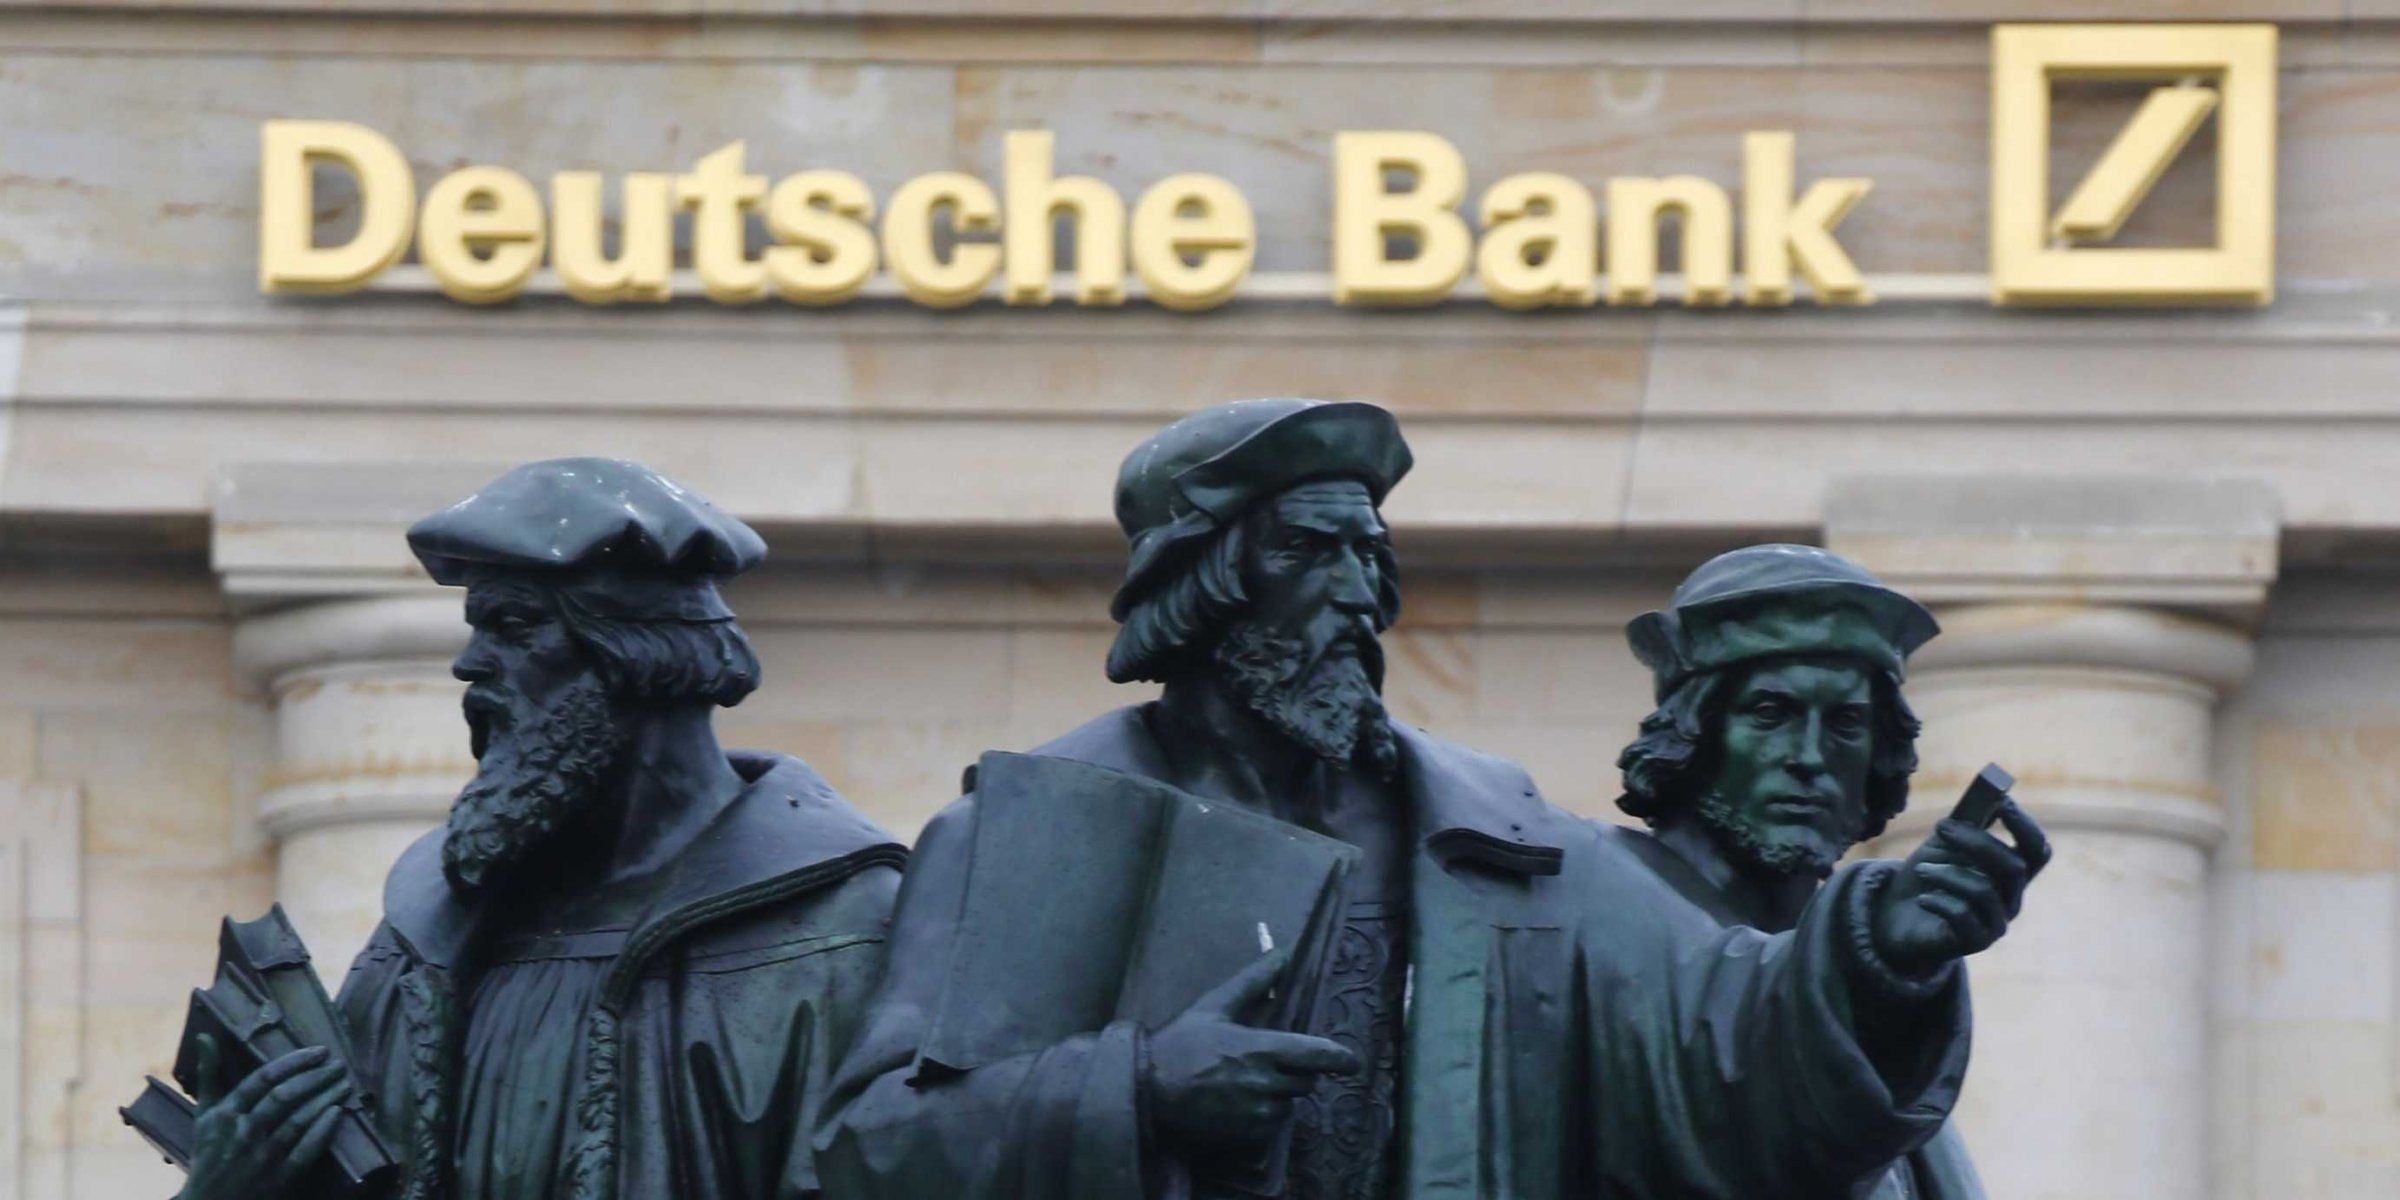 Deutsche Bank S Head Of Stock Trading Explains How Markets Went Haywire Why Volatility Is Here To Stay And What Investors Are Actually Concerned About Russian Money Money Laundering Investment Banking